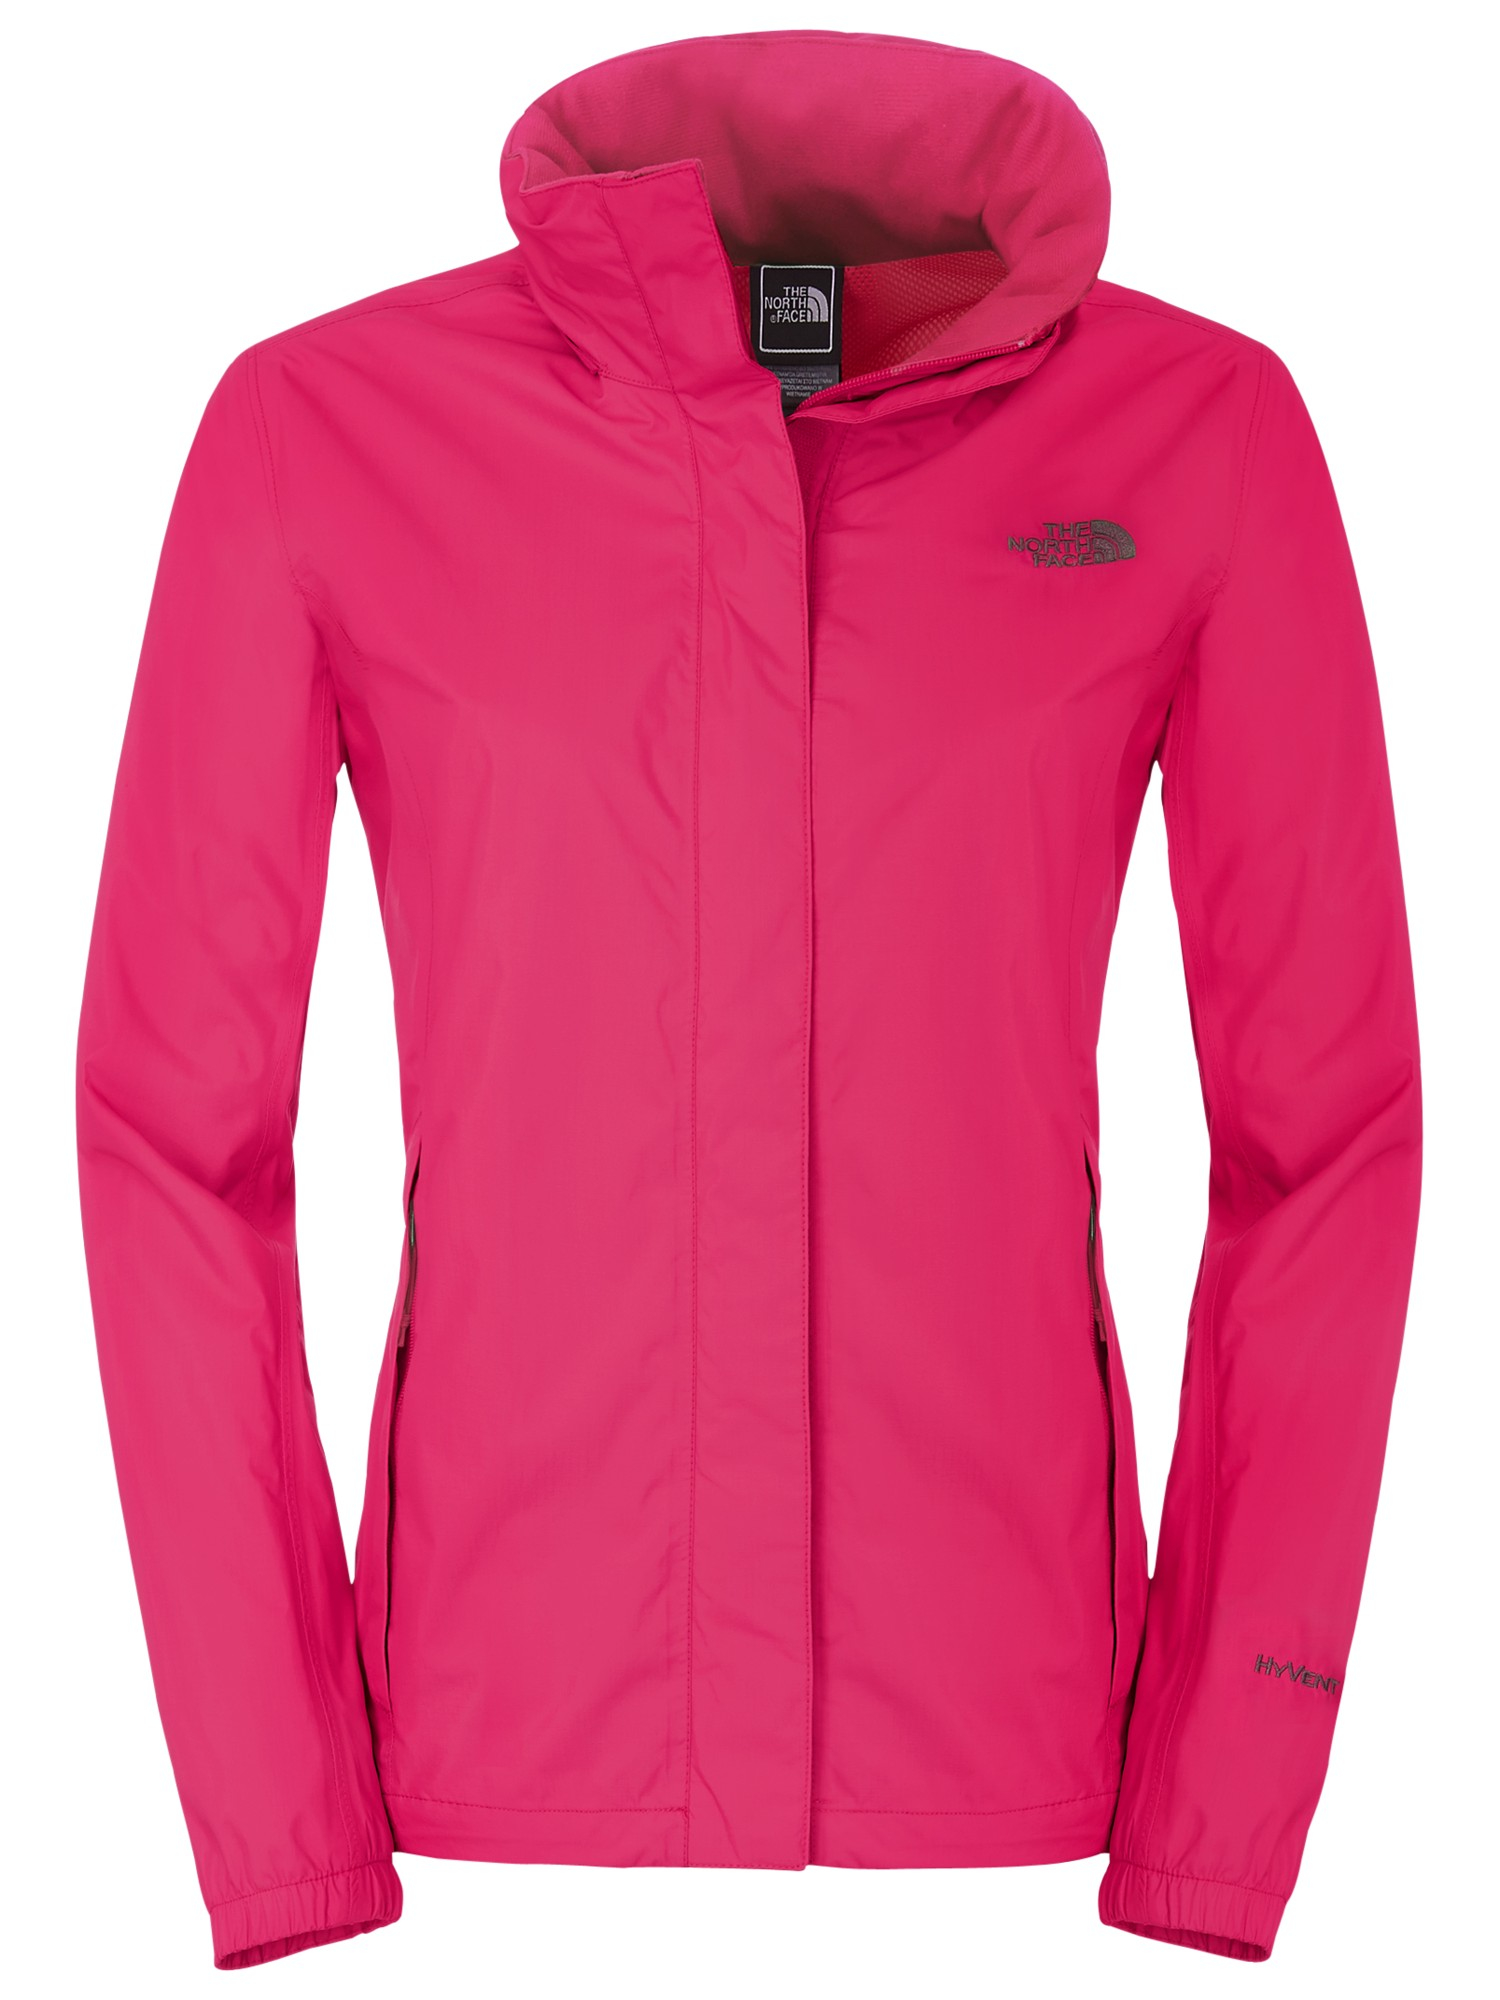 db9c6e5527d8 The North Face Resolve Jacket in Pink - Lyst